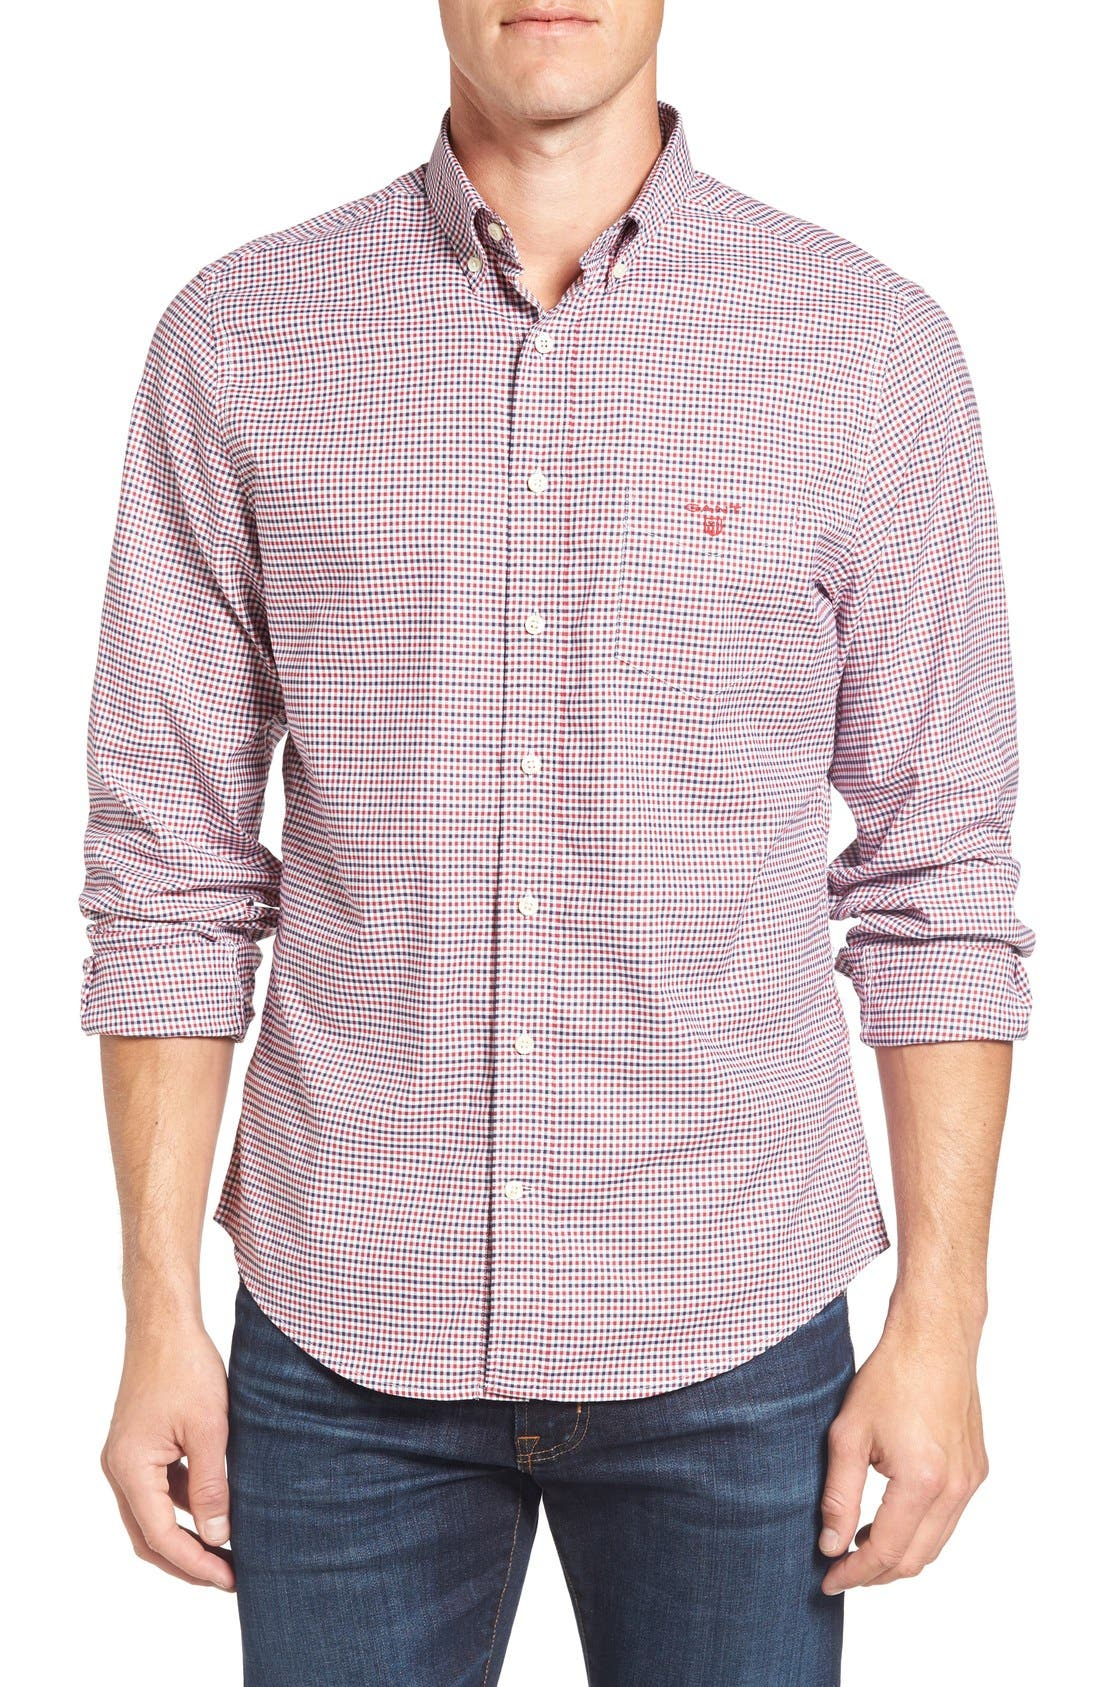 Main Image - Gant Gingham Fitted Sport Shirt